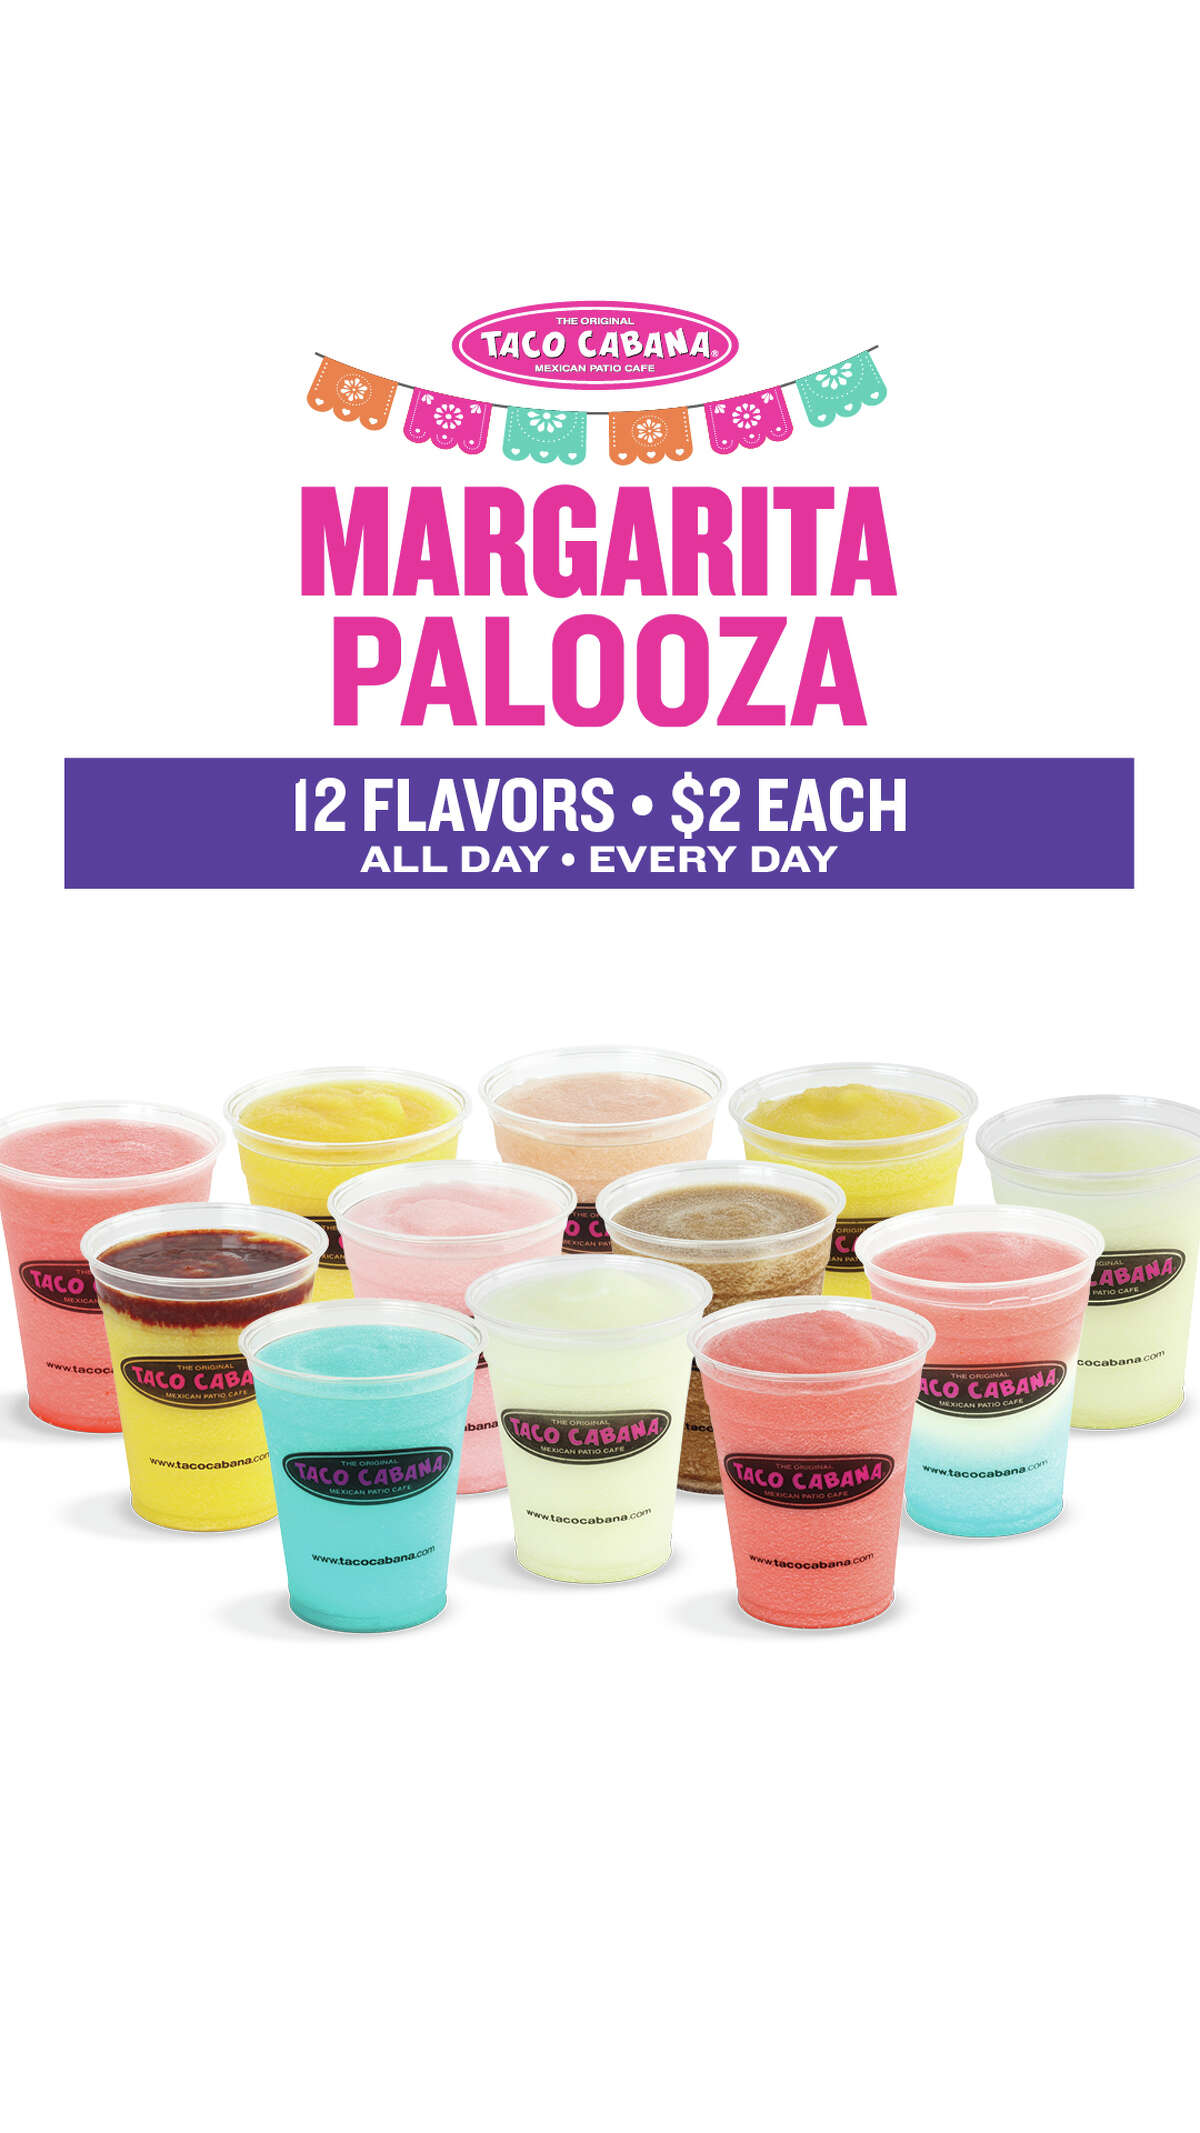 There's about to a whole new menu of margarita options at Taco Cabana starting this weekend, all for $2 each.